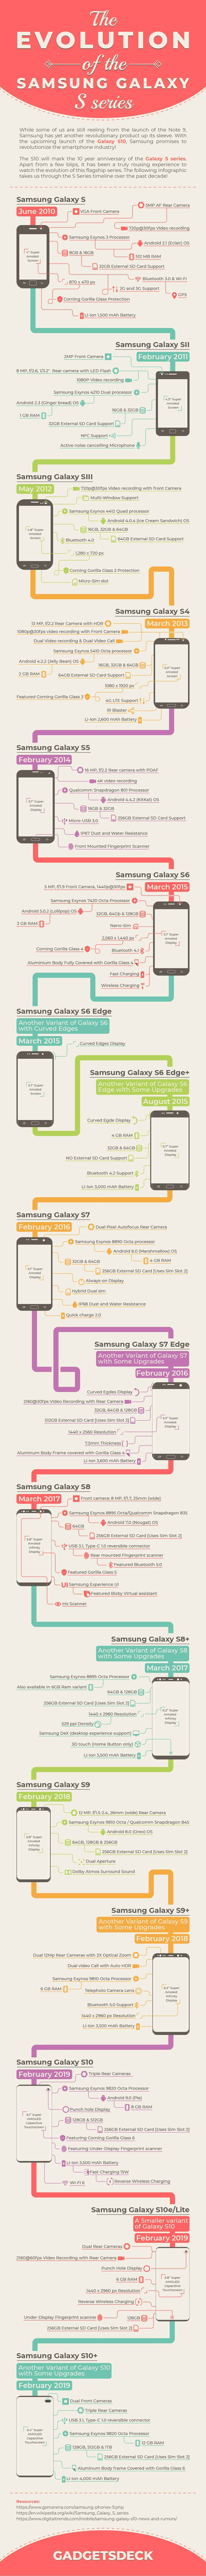 The Evolution of The Samsung Galaxy S Series